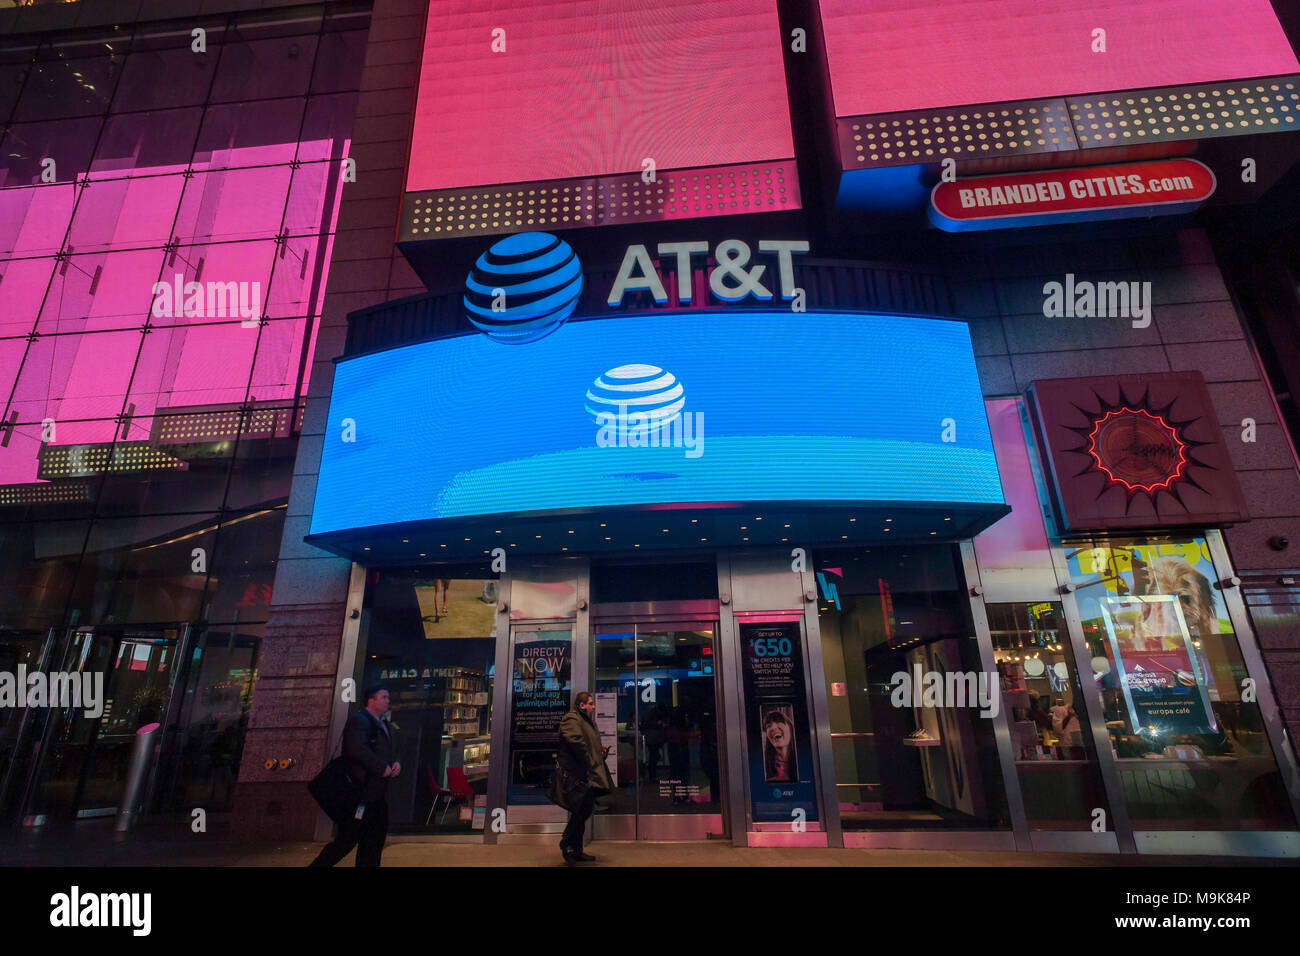 An AT&T store in Times Square in New York on Tuesday, March 20, 2018. The antitrust case against the AT&T acquisition of Time Warner went to trial this week. The ongoing saga of this acquisition has been going on for 17 months. (© Richard B. Levine) - Stock Image